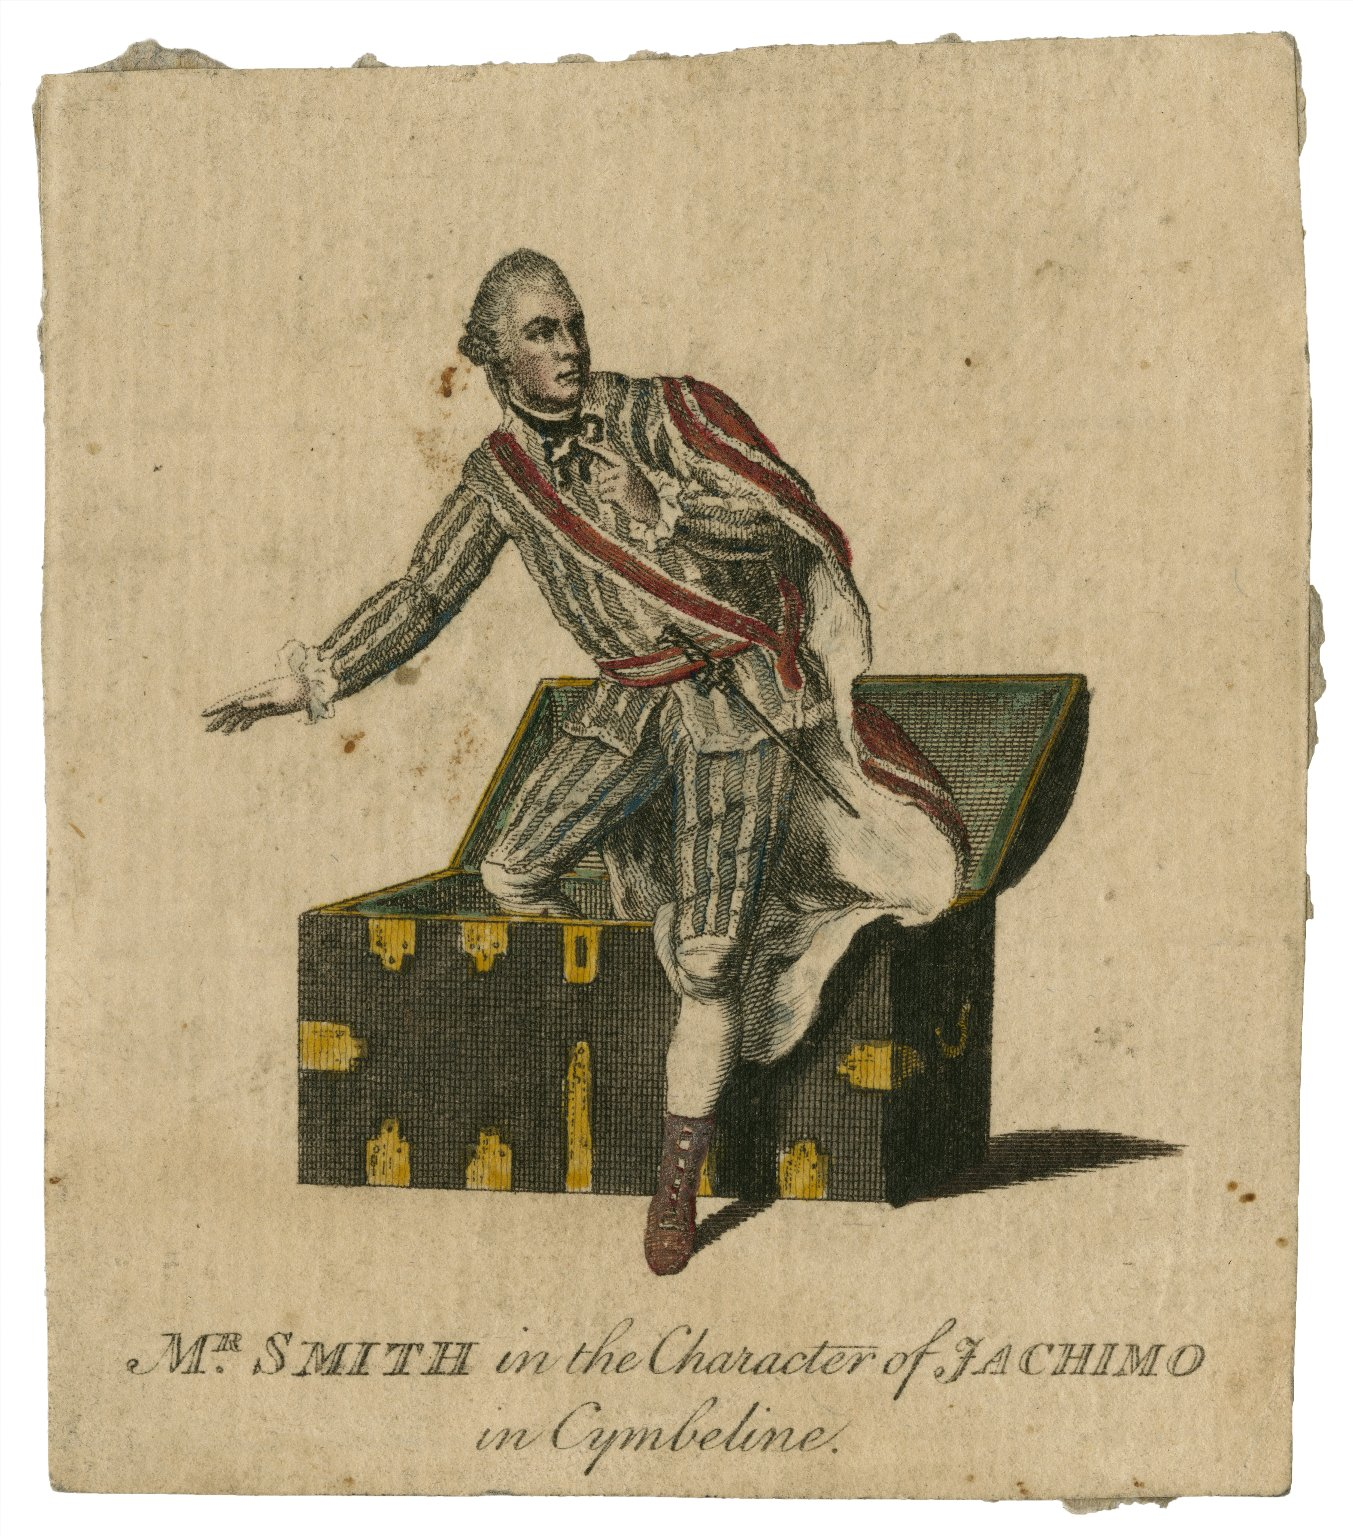 Mr. Smith in the character of Jachimo in [Shakespeare's] Cymbeline [graphic].